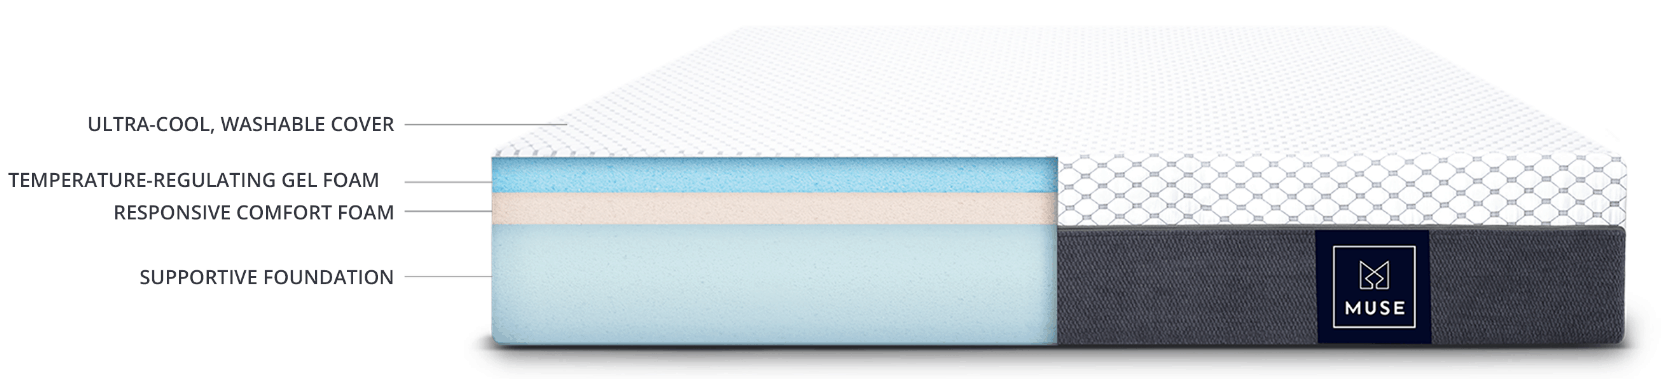 Structure and layers of Muse sleep mattress